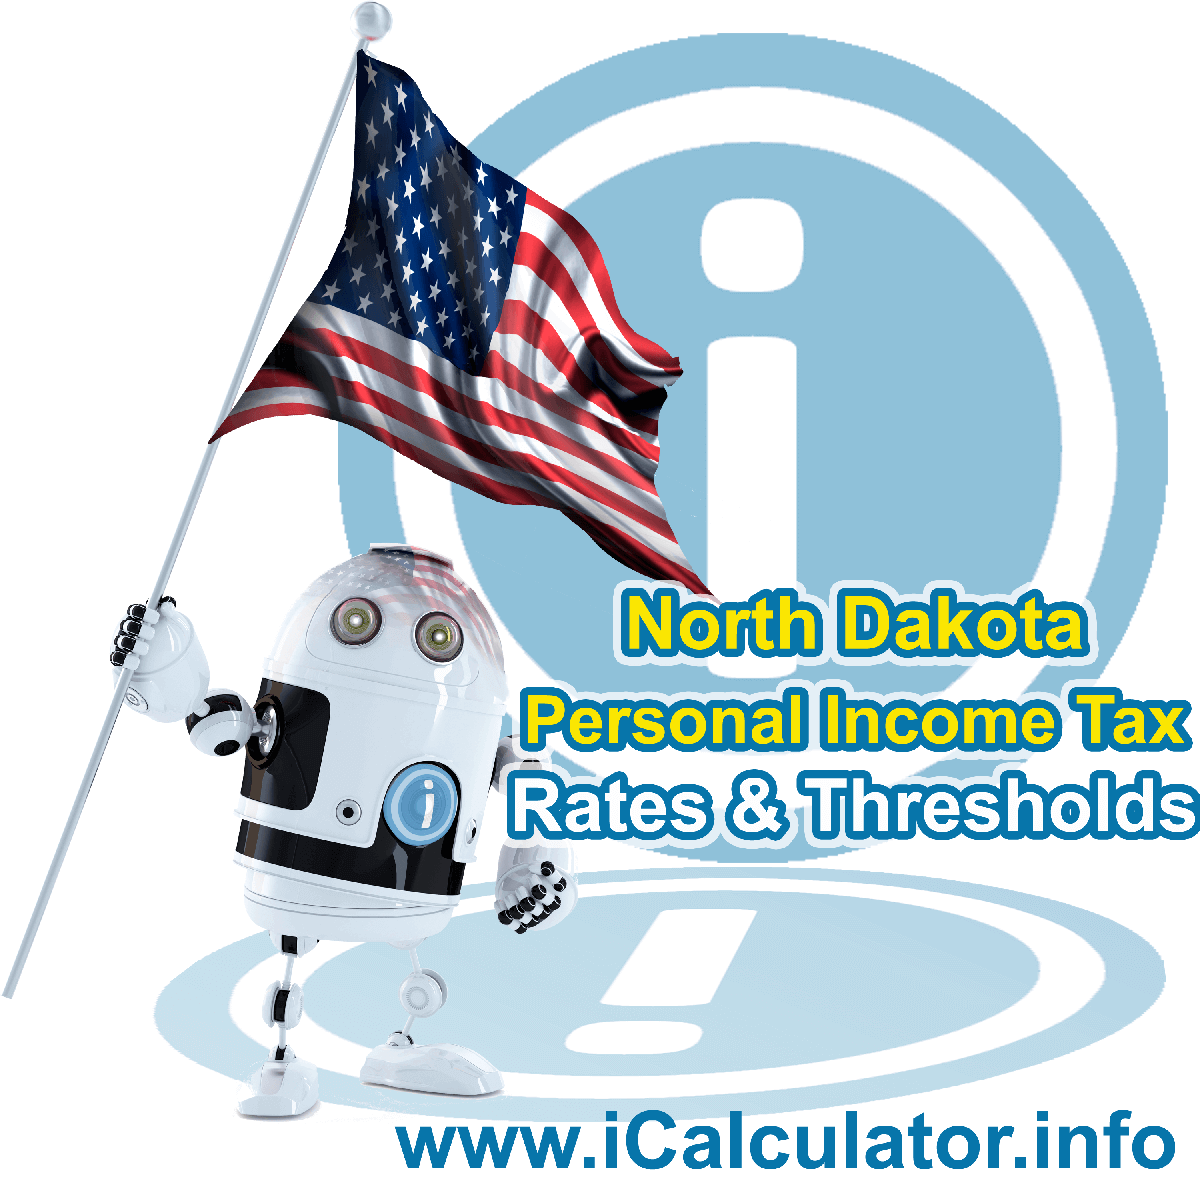 North Dakota State Tax Tables 2017. This image displays details of the North Dakota State Tax Tables for the 2017 tax return year which is provided in support of the 2017 US Tax Calculator